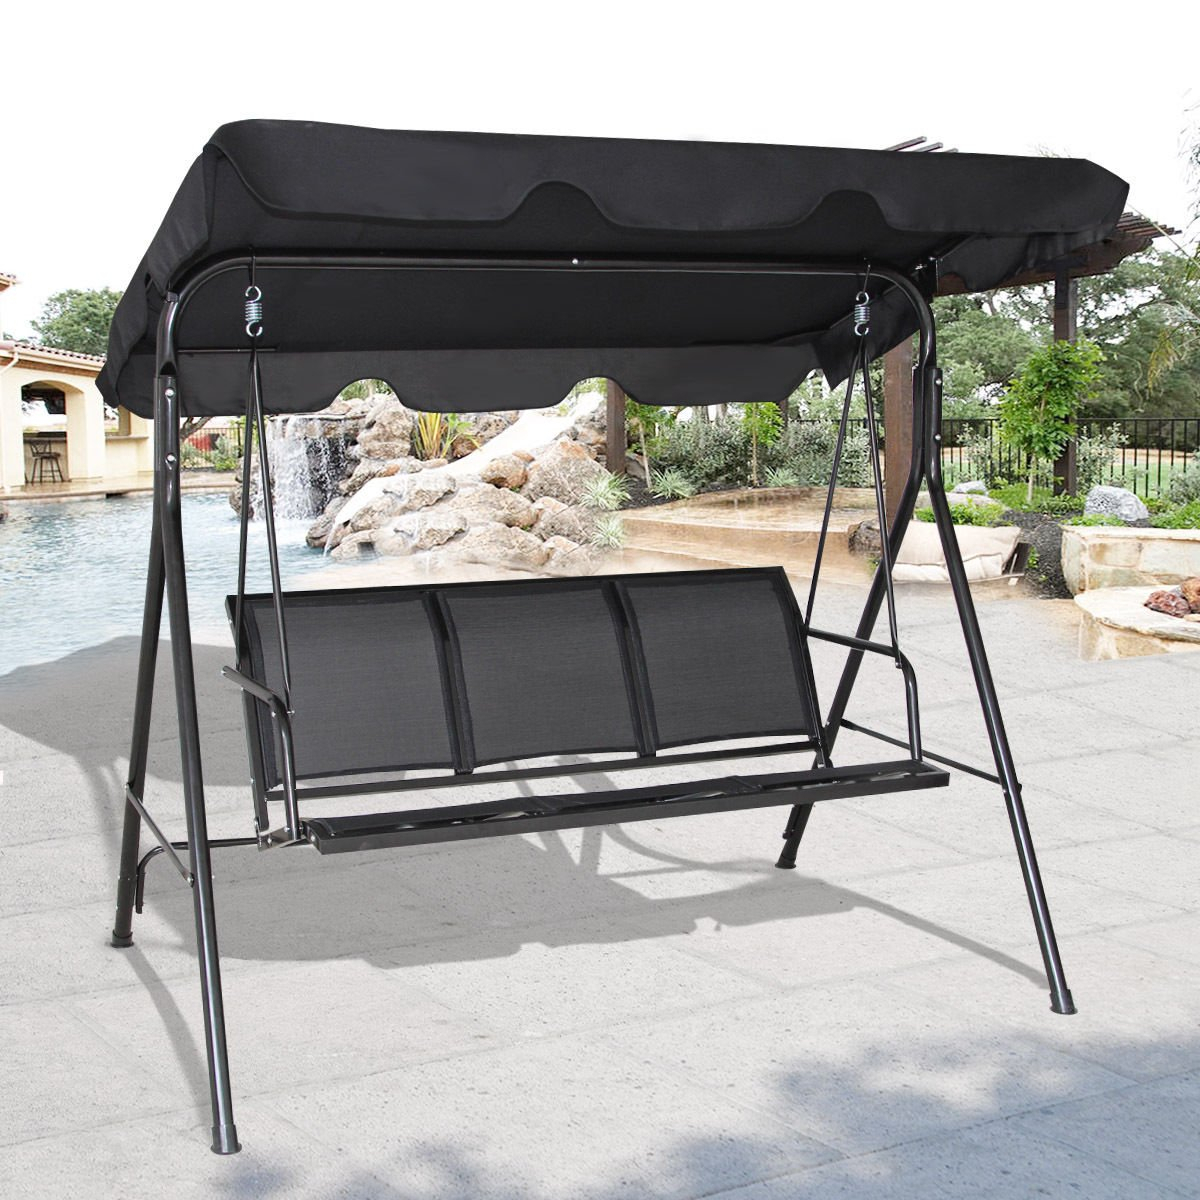 Cheap Patio 3 Person Swing, Find Patio 3 Person Swing Deals Pertaining To Patio Loveseat Canopy Hammock Porch Swings With Stand (Image 9 of 25)